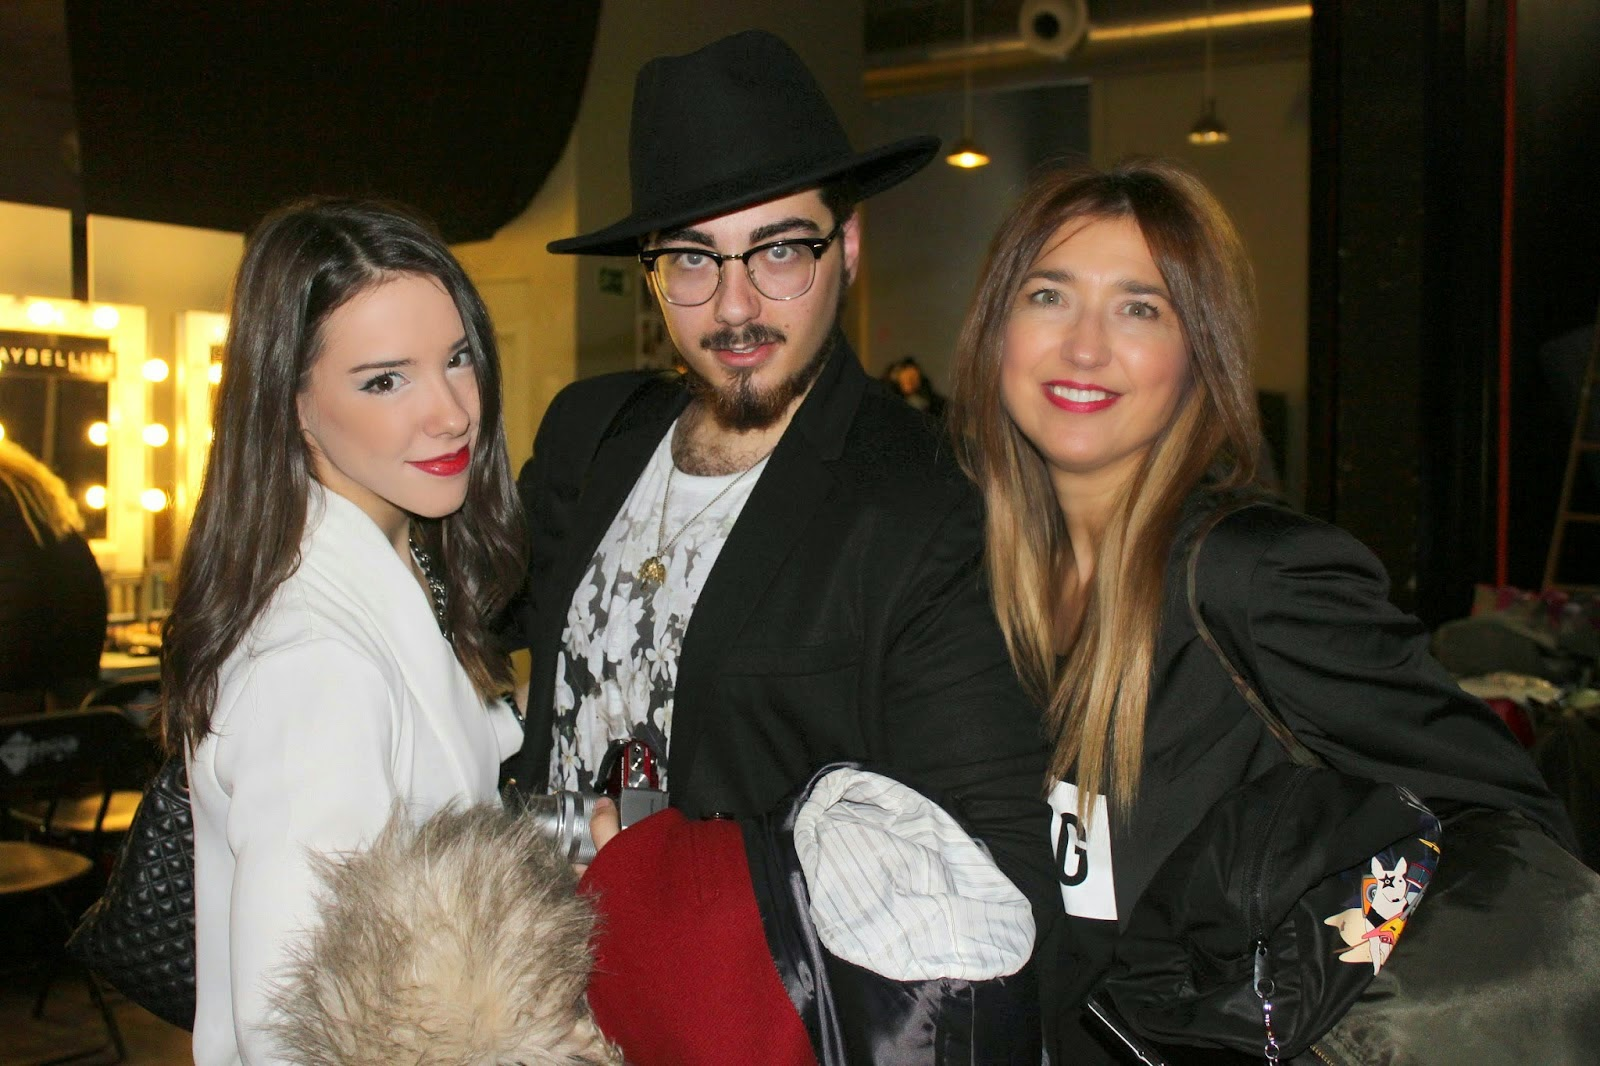 Backstage, MFSHOW MEN, Circo Price, Pasarela, Desfiles, Modelos, Blog de Moda, Street Style, Friends, Looks, Cool